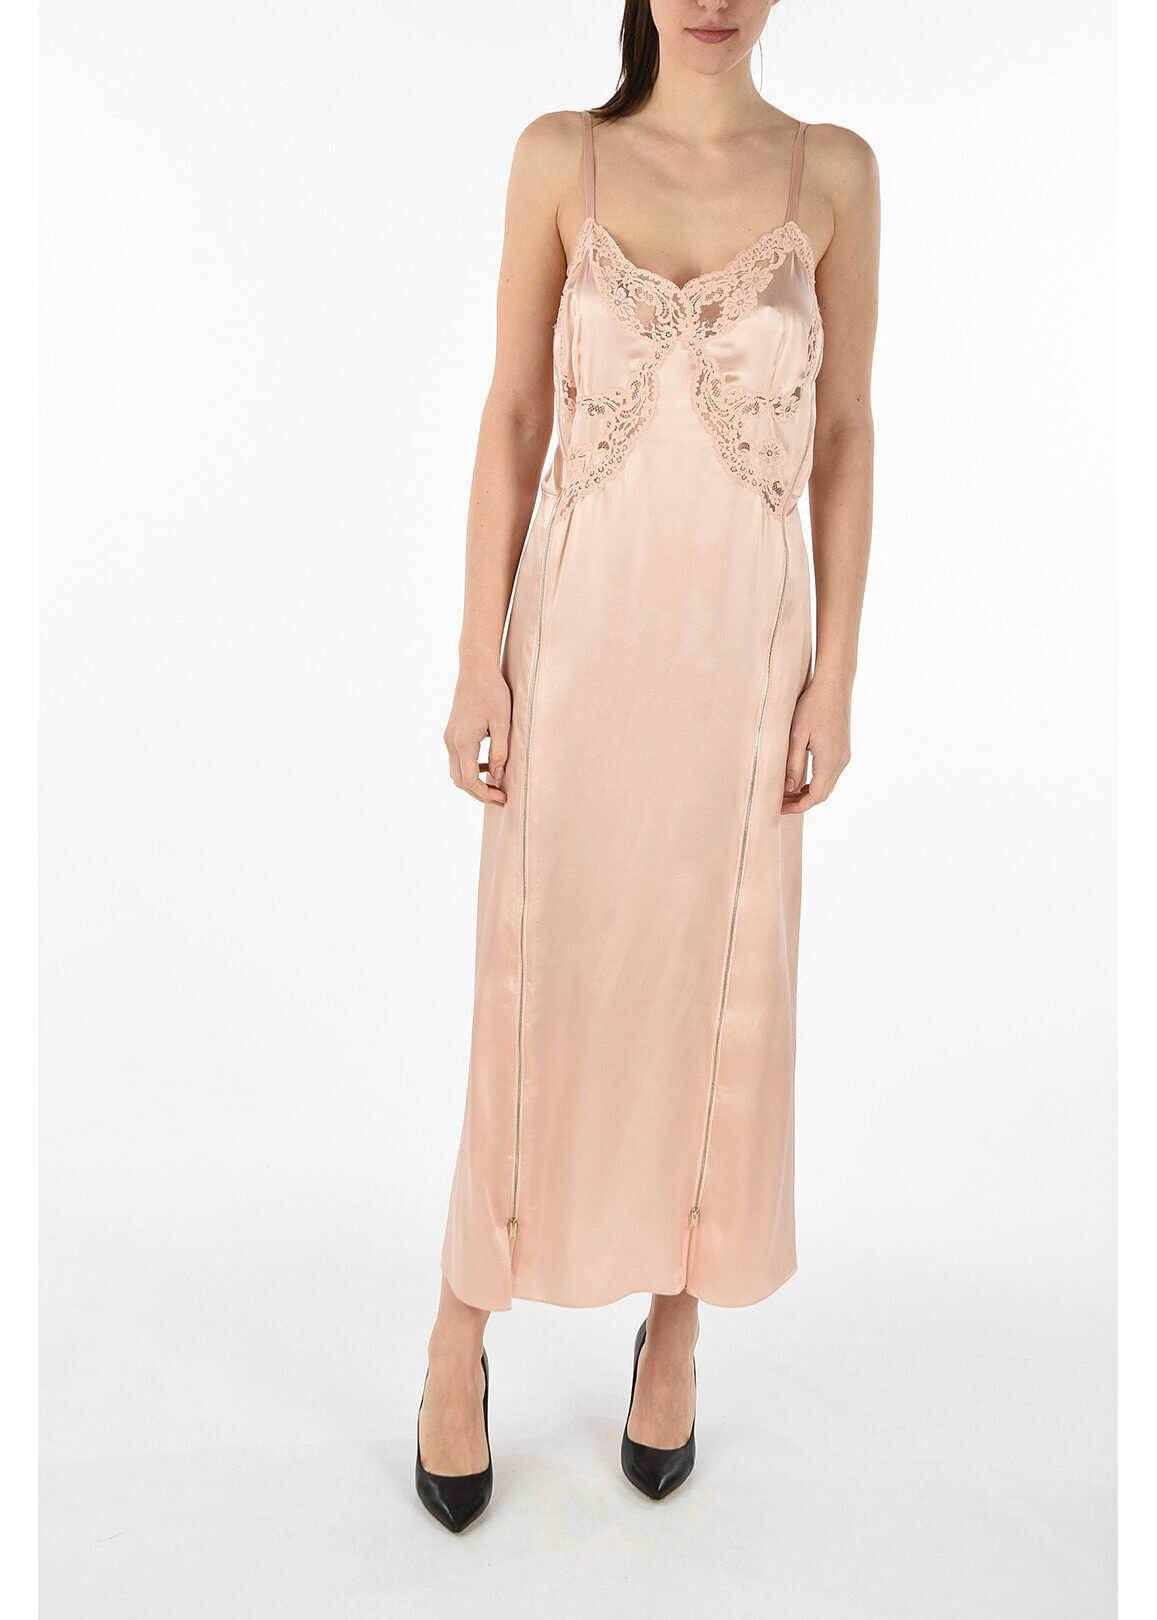 adidas by Stella McCartney silk dress with lace details PINK